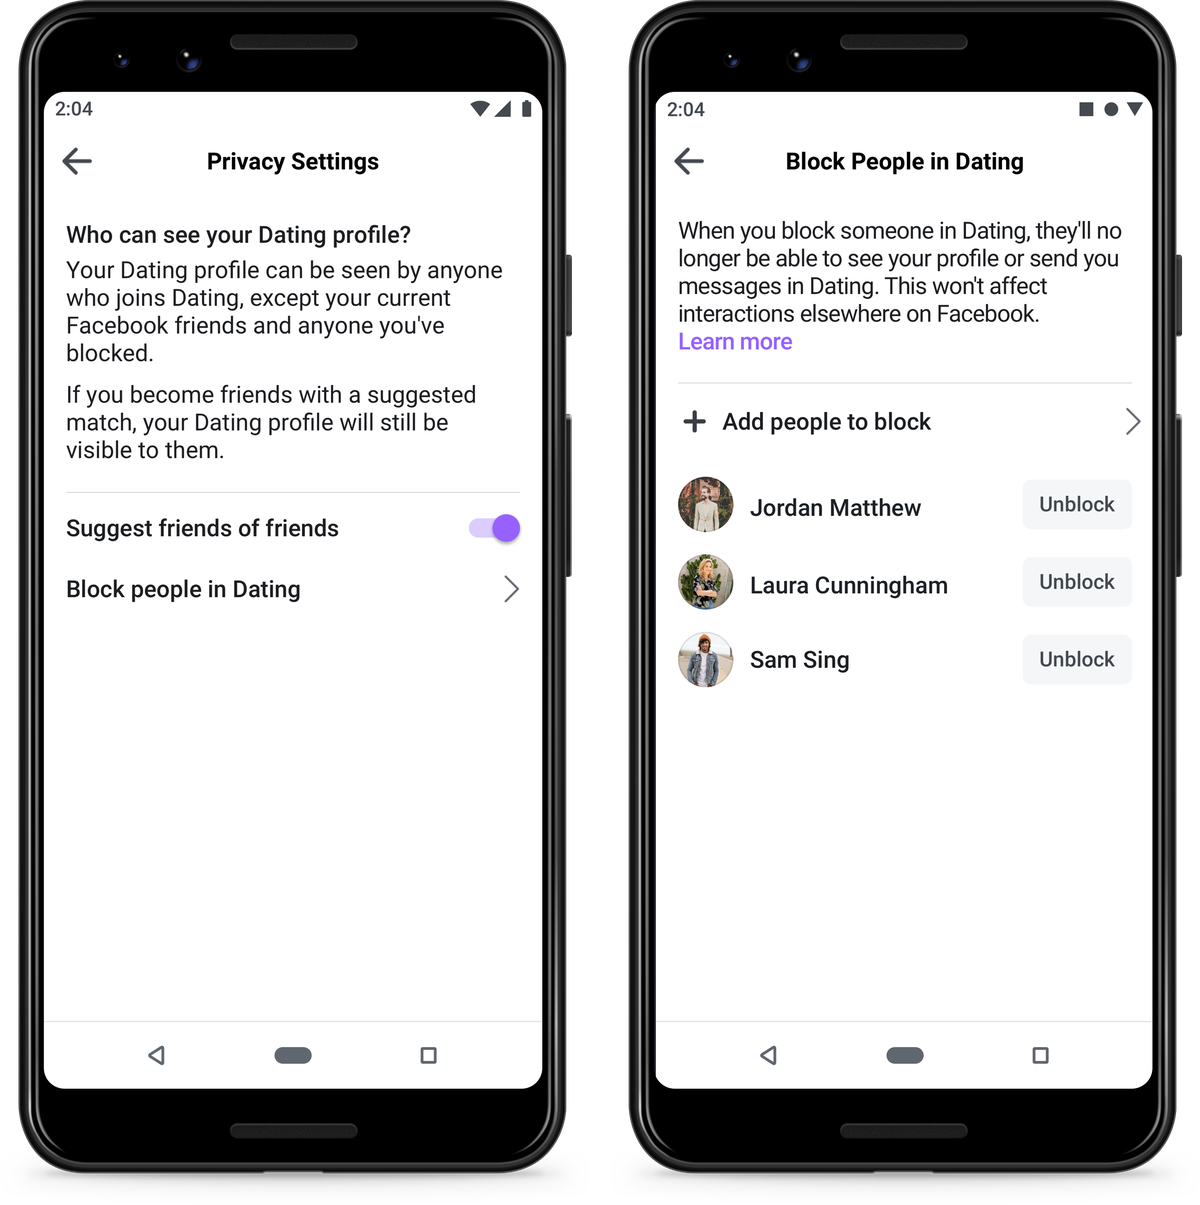 Two cellphone screens showing how privacy settings and blocking work in the Facebook Dating app.